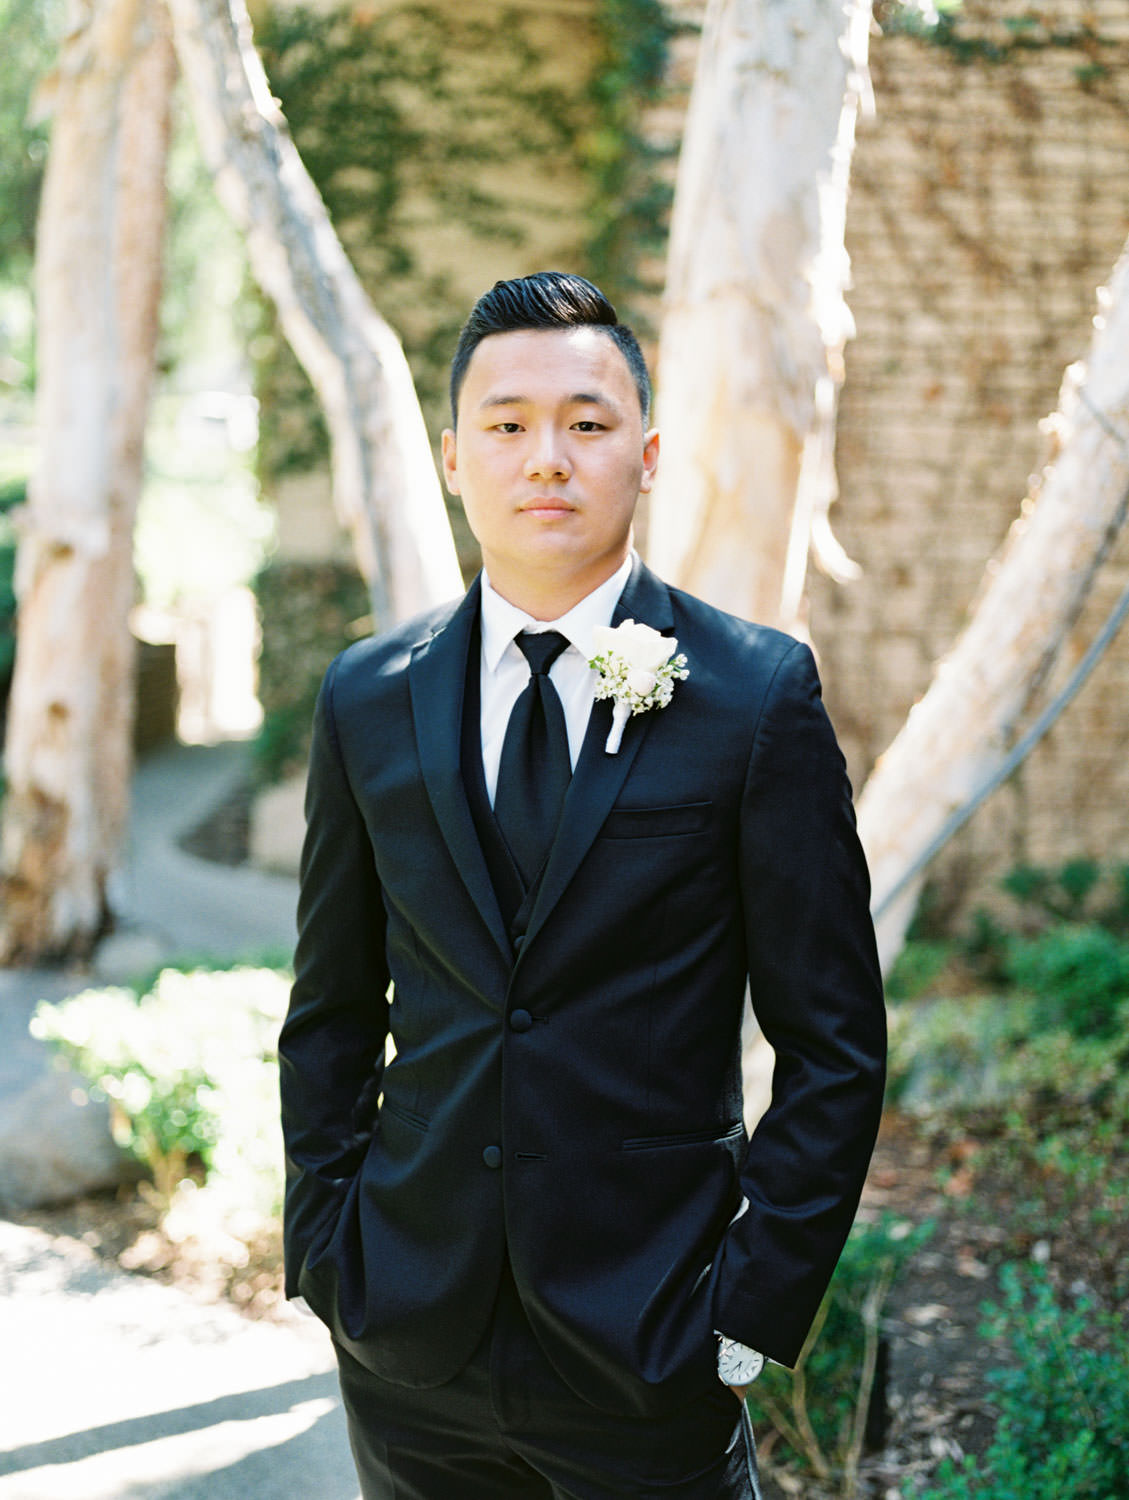 Groom in a three piece black tuxedo with white rose boutonniere. Wedding at Rancho Bernardo Inn. Film photo by Cavin Elizabeth Photography